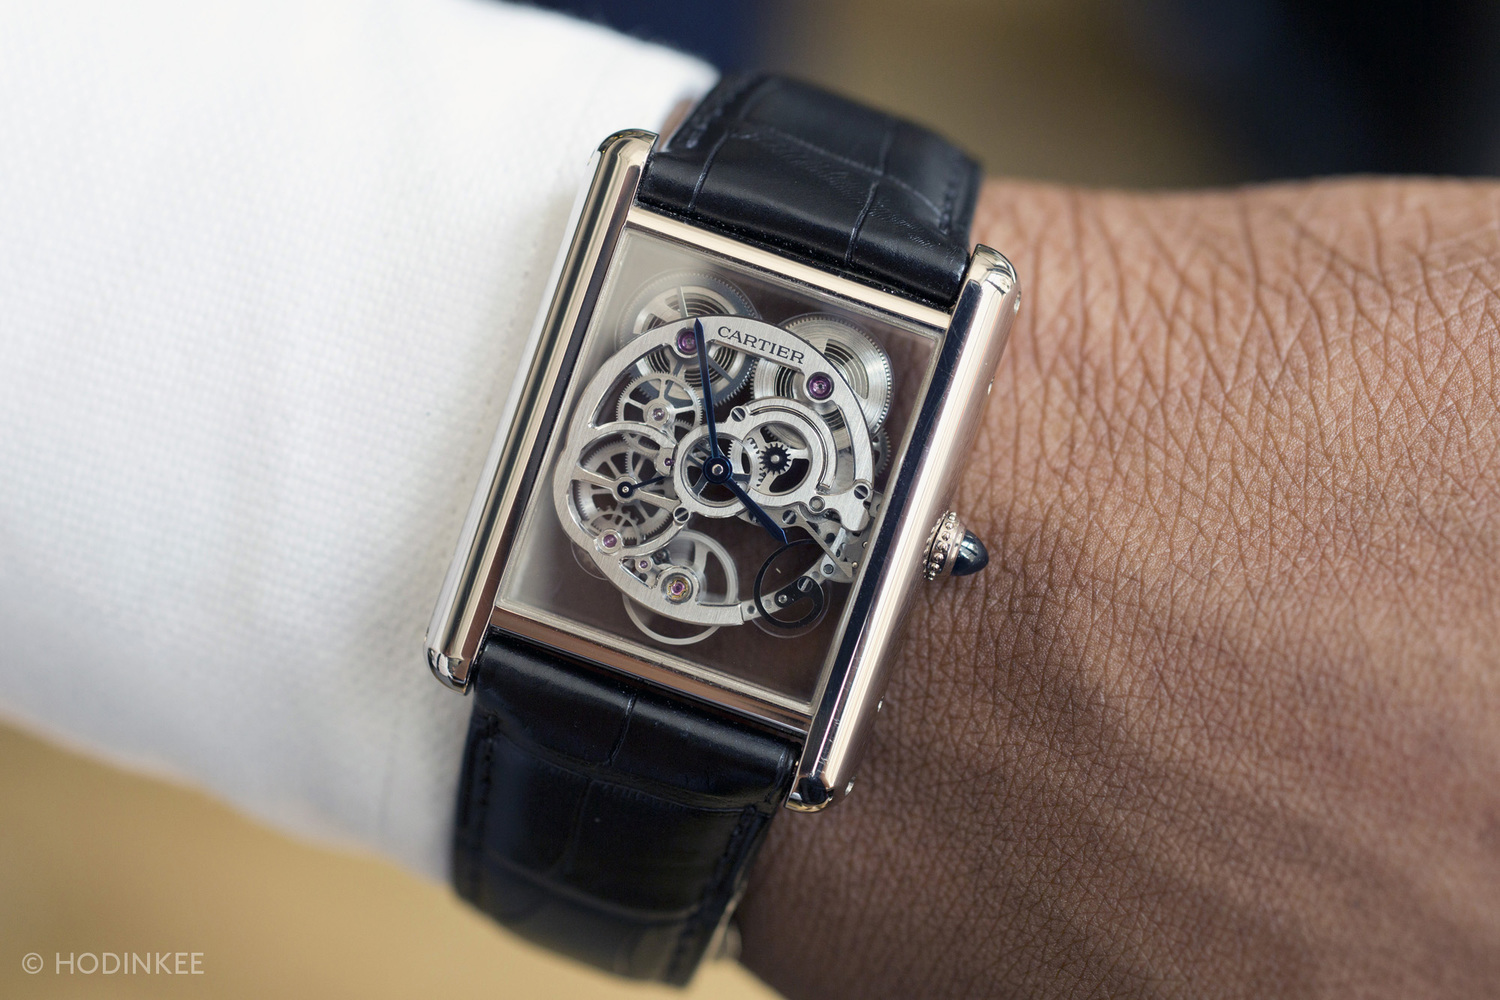 Hands On  With The Cartier Tank LC Sapphire Skeleton  A New Take On     There s the brash   2 million  milled sapphire way to do things  and then  there s this  Unveiled earlier this year at SIHH  the Cartier Tank